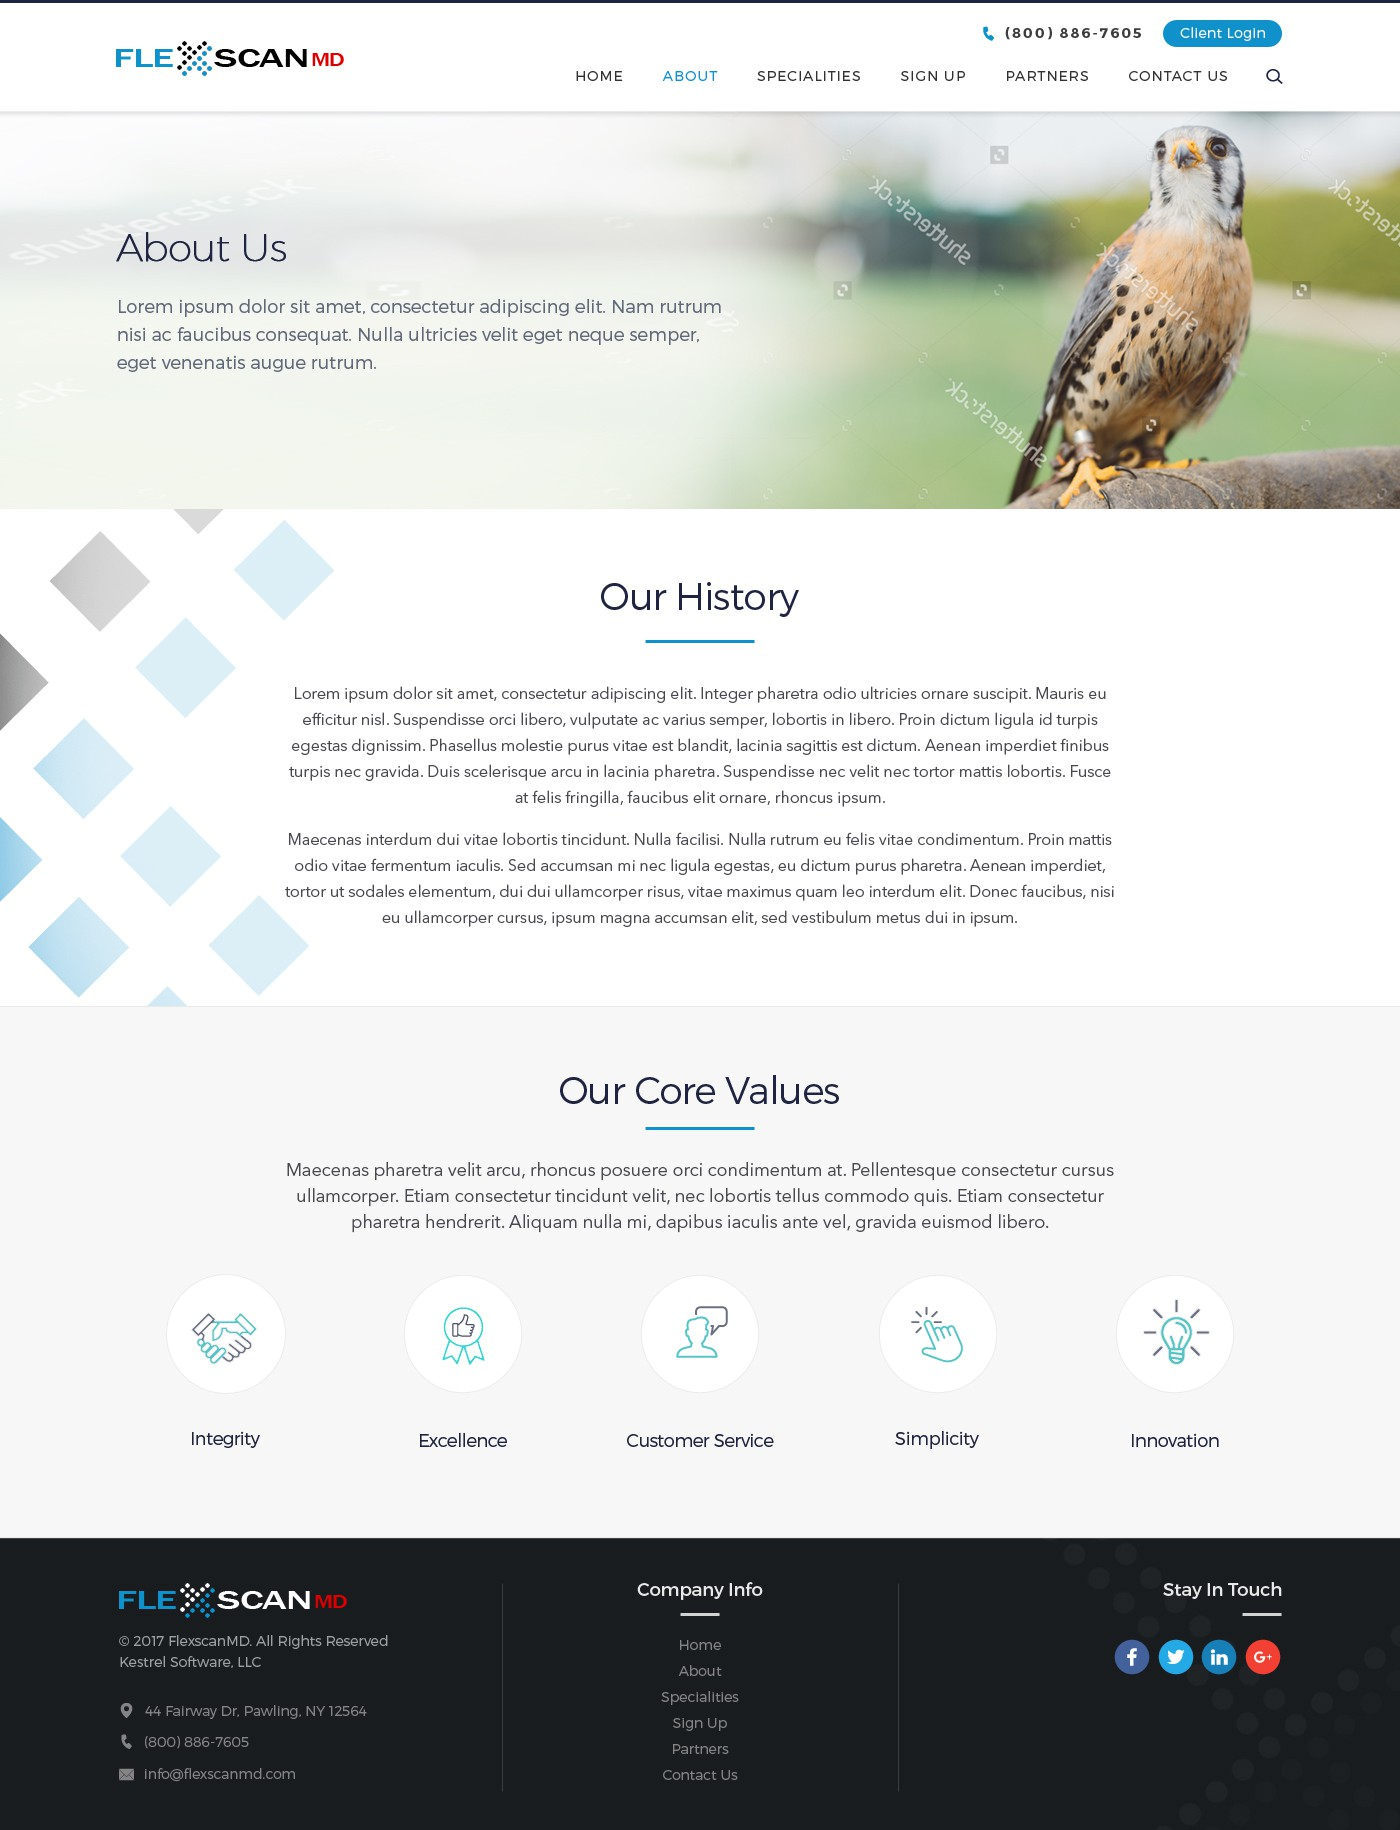 FlexscanMD needs a fresh and captivating redesign of the website.